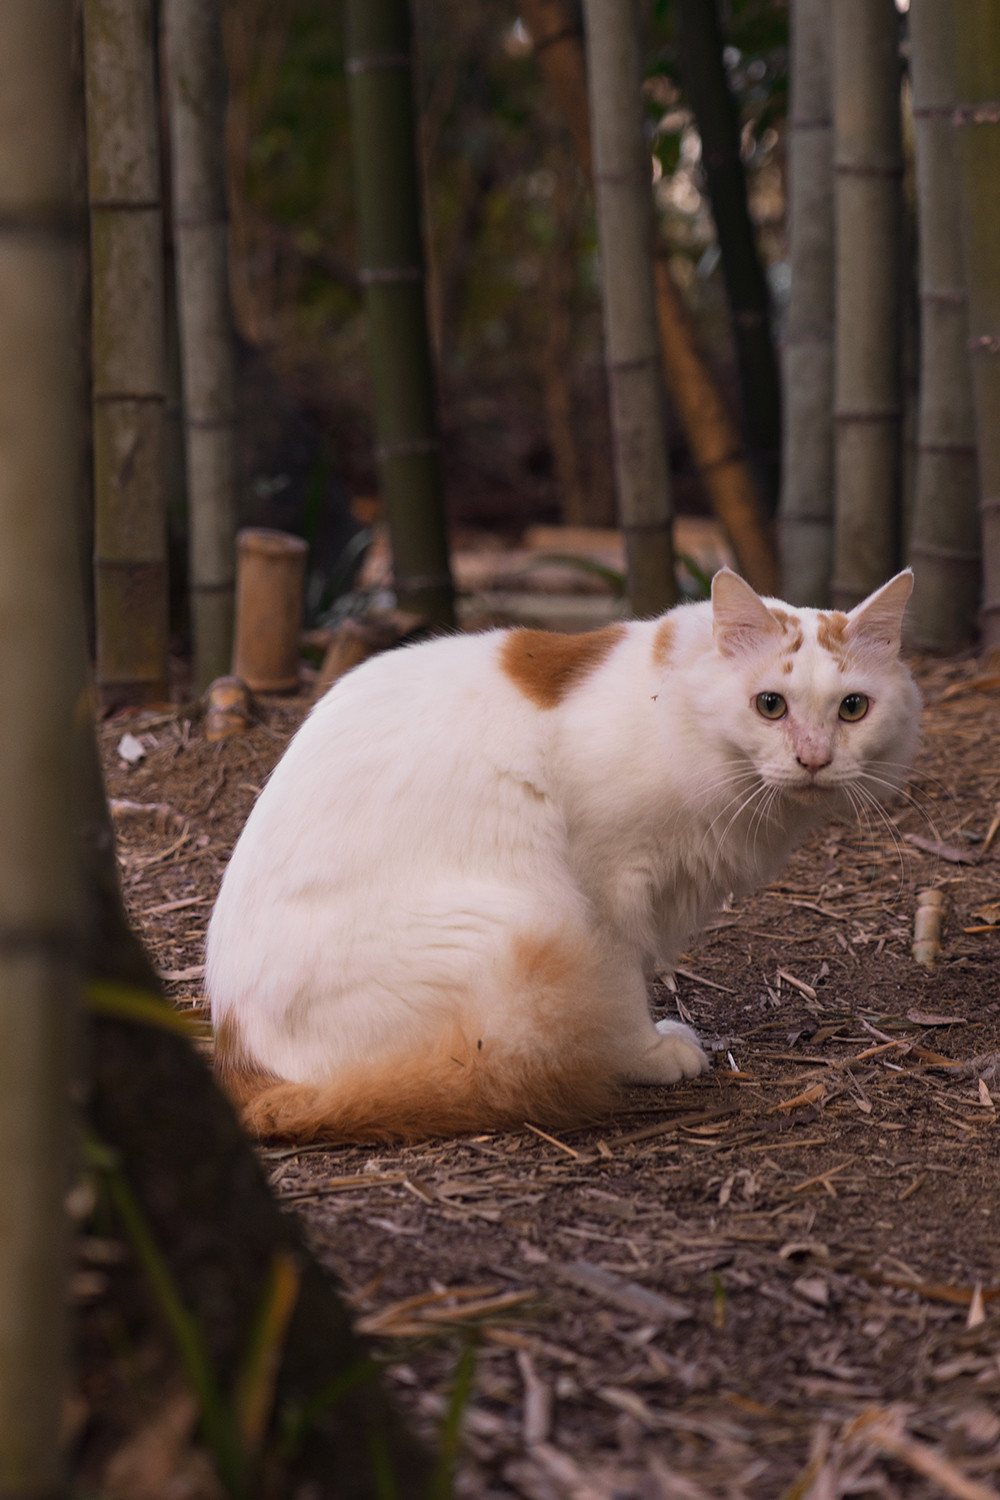 11kyoto-arashiyama-bambooforest-cat-japan-travel